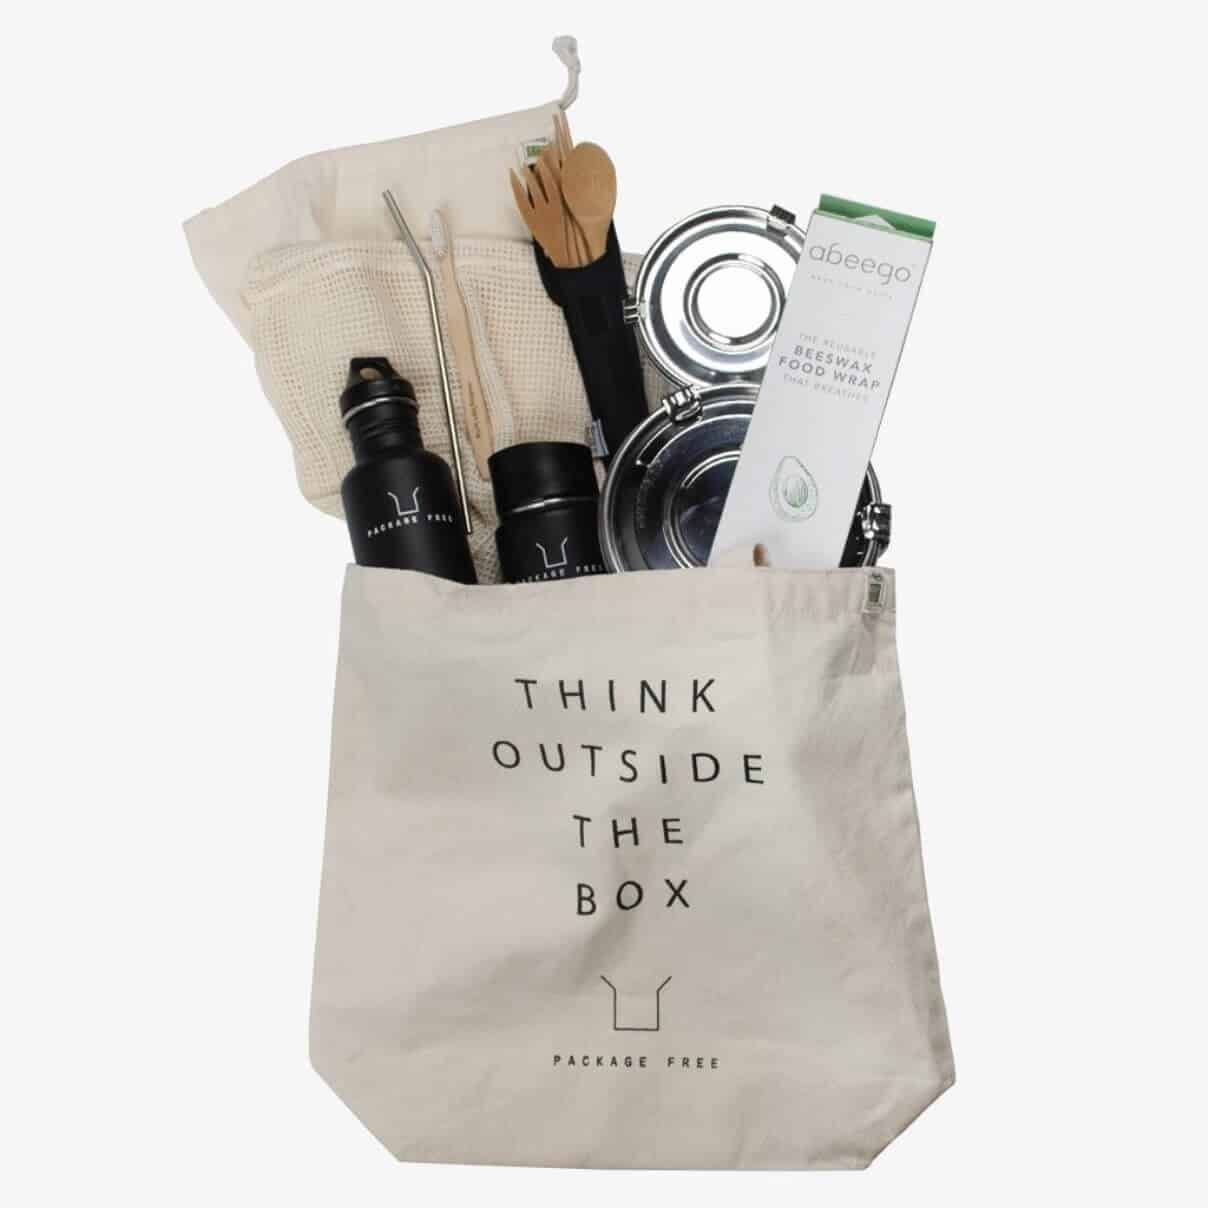 Best Zero Waste & Bulk Online Stores For All Your Package Free Shopping Needs Image by Package Free Shop #zerowaste #onlinestores